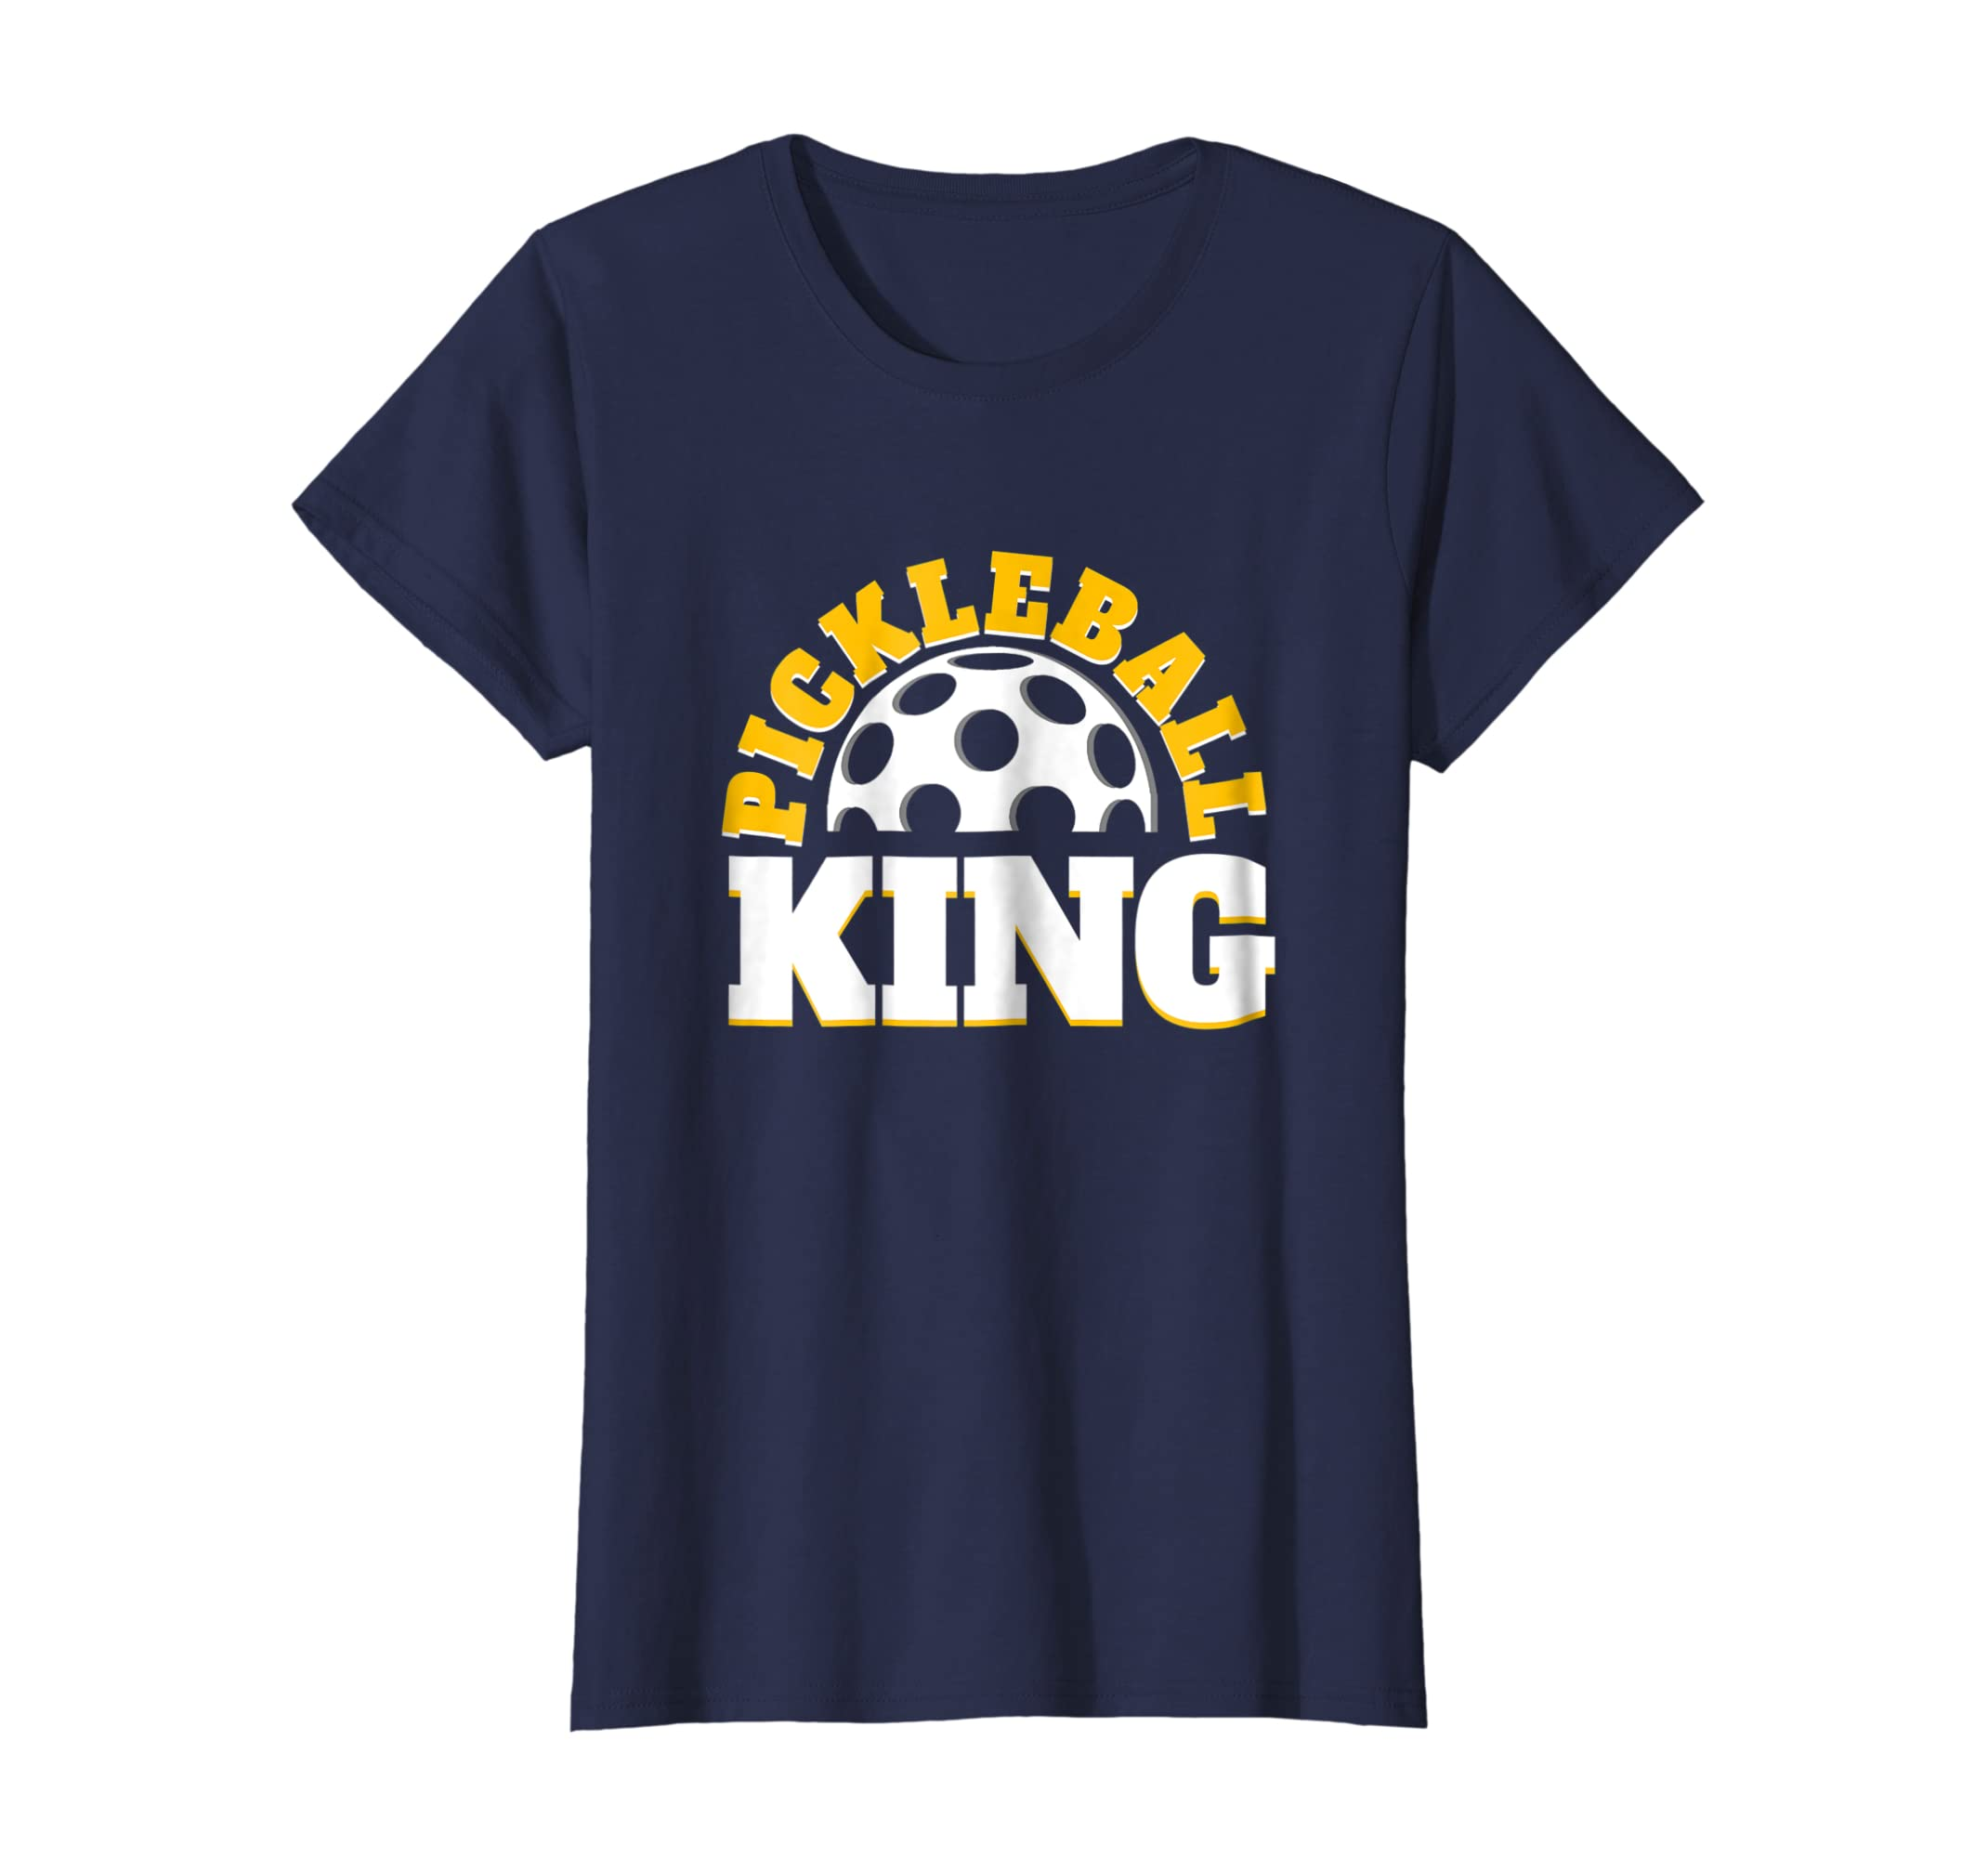 a680275fdb Amazon.com: Pickleball Dink King - Men Woman T Shirt: Clothing